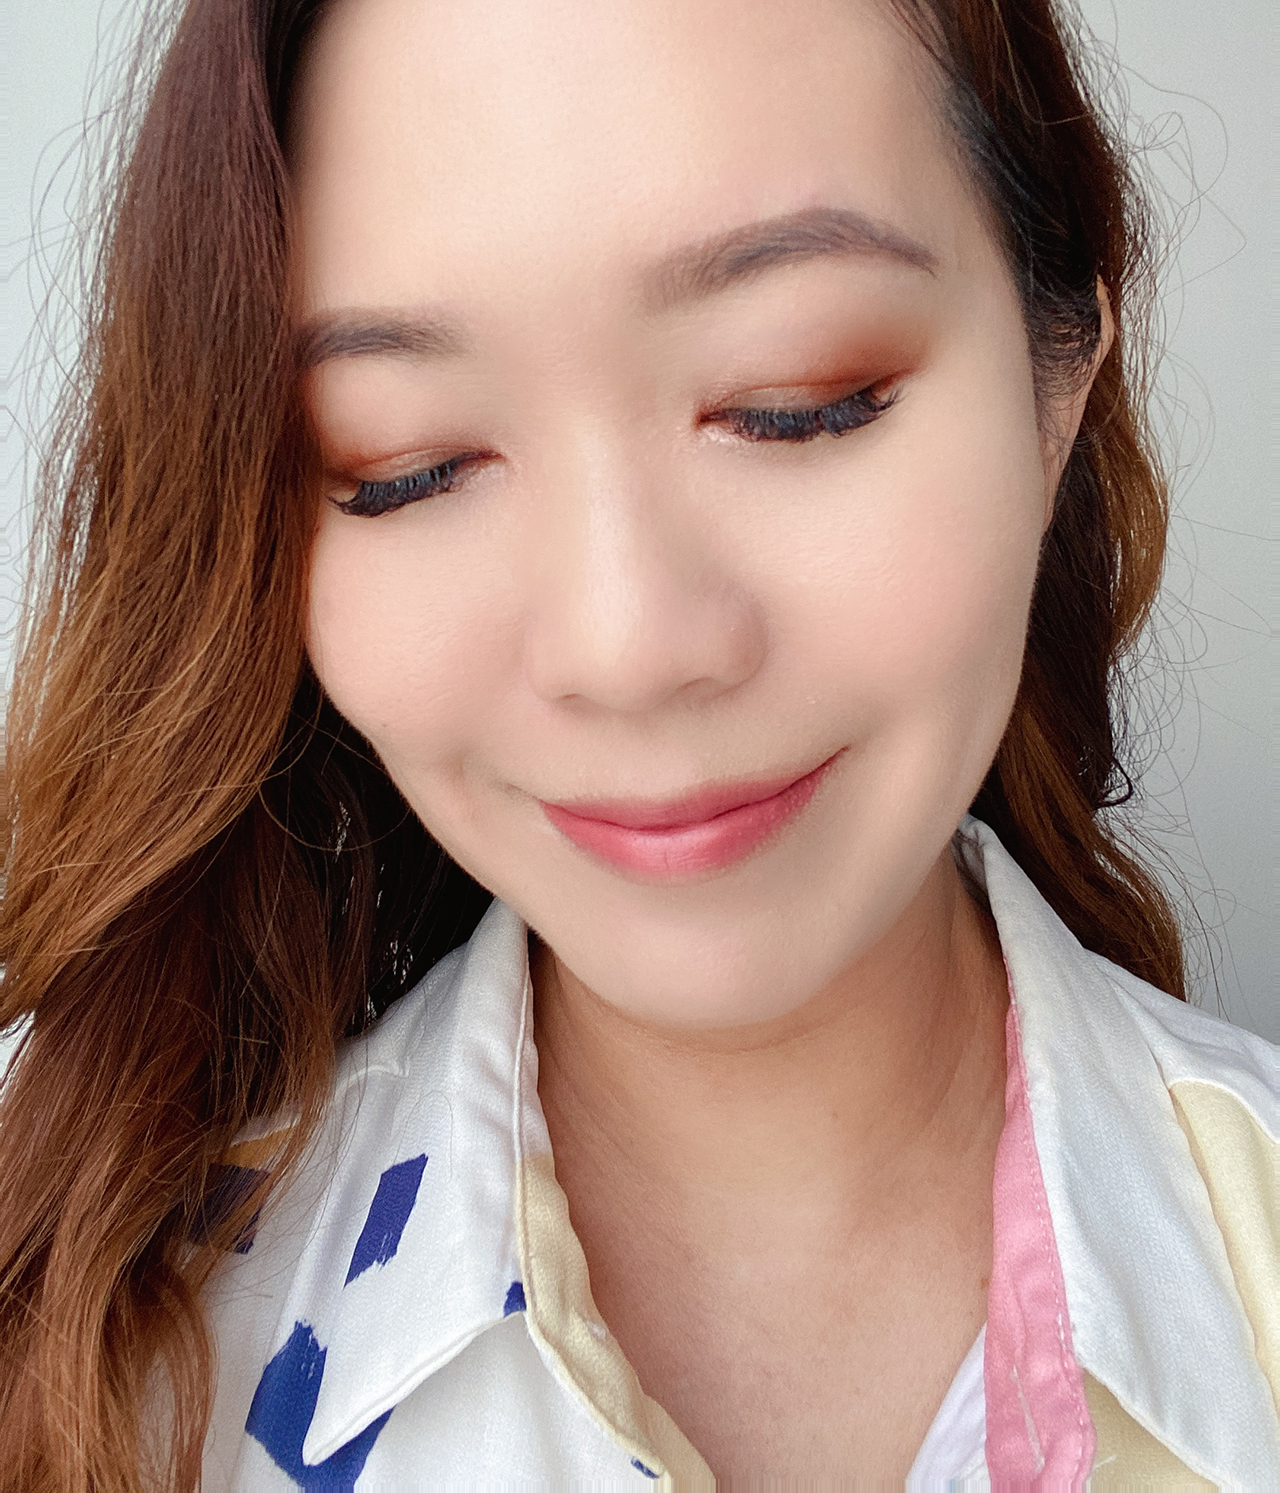 NARS Extreme Effects Eyeshadow Palette makeup look